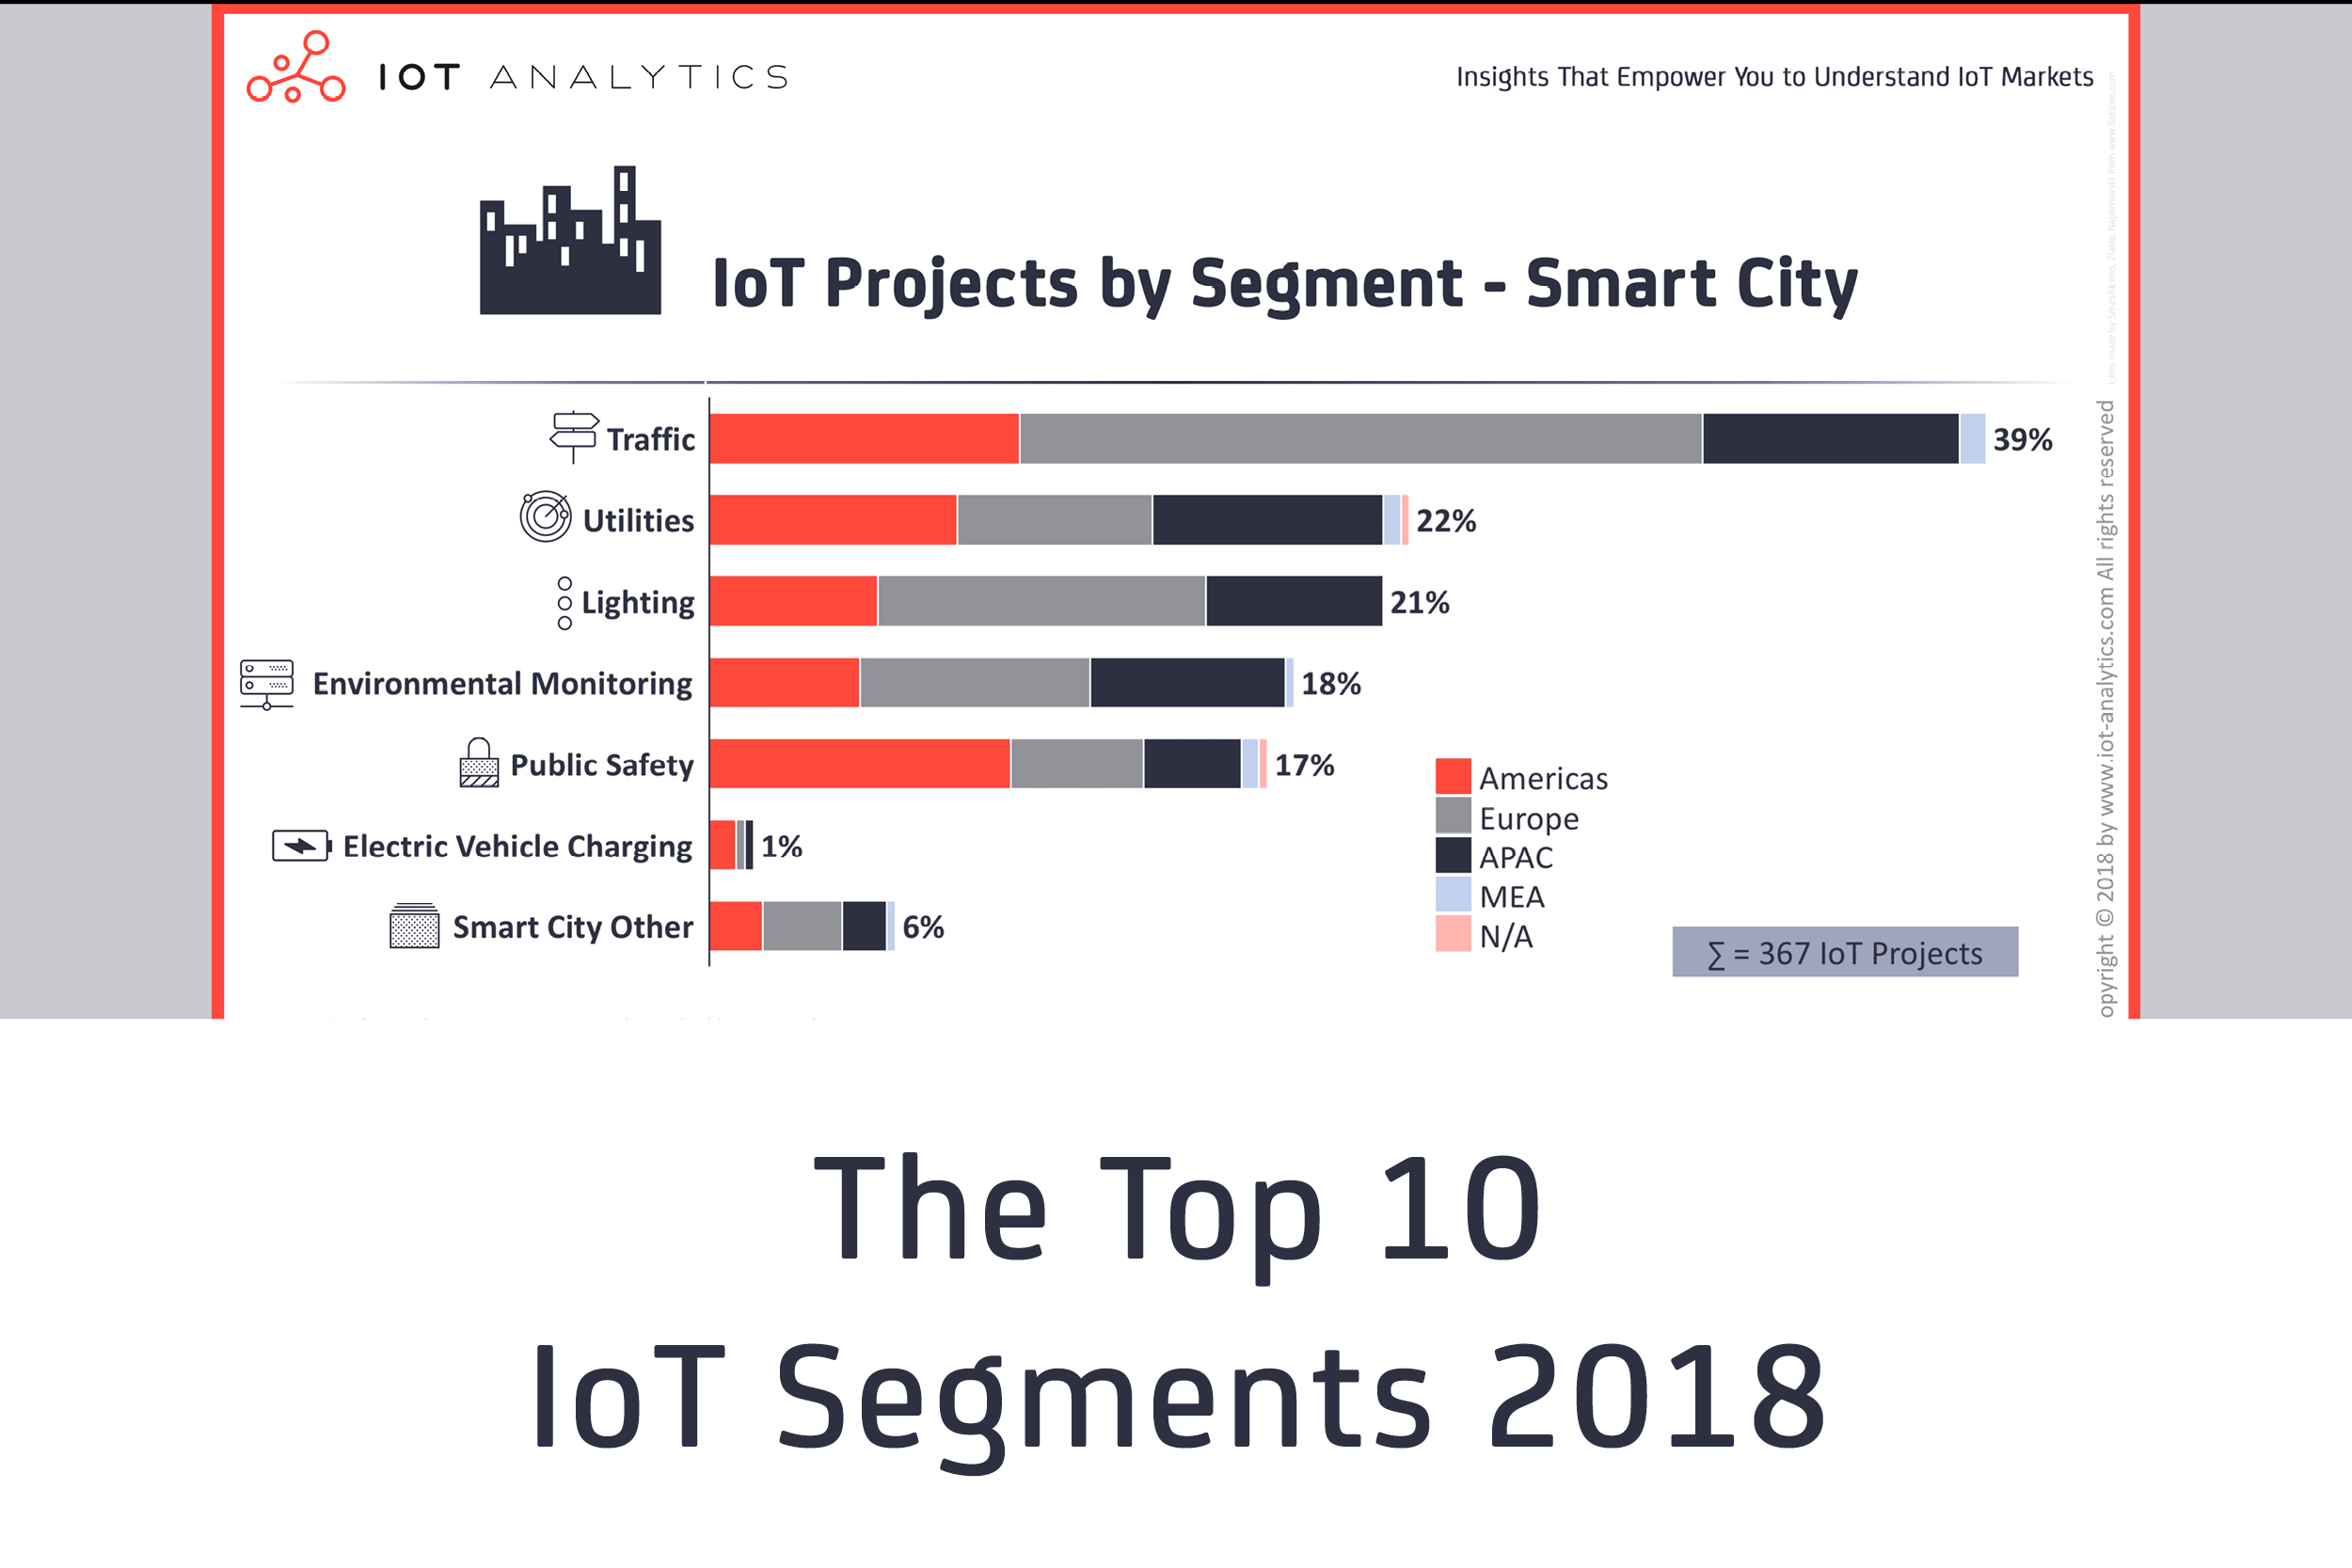 011 Top 10 Iot Segments In Research Paper Internet Of Things Pdf Dreaded 2018 Full